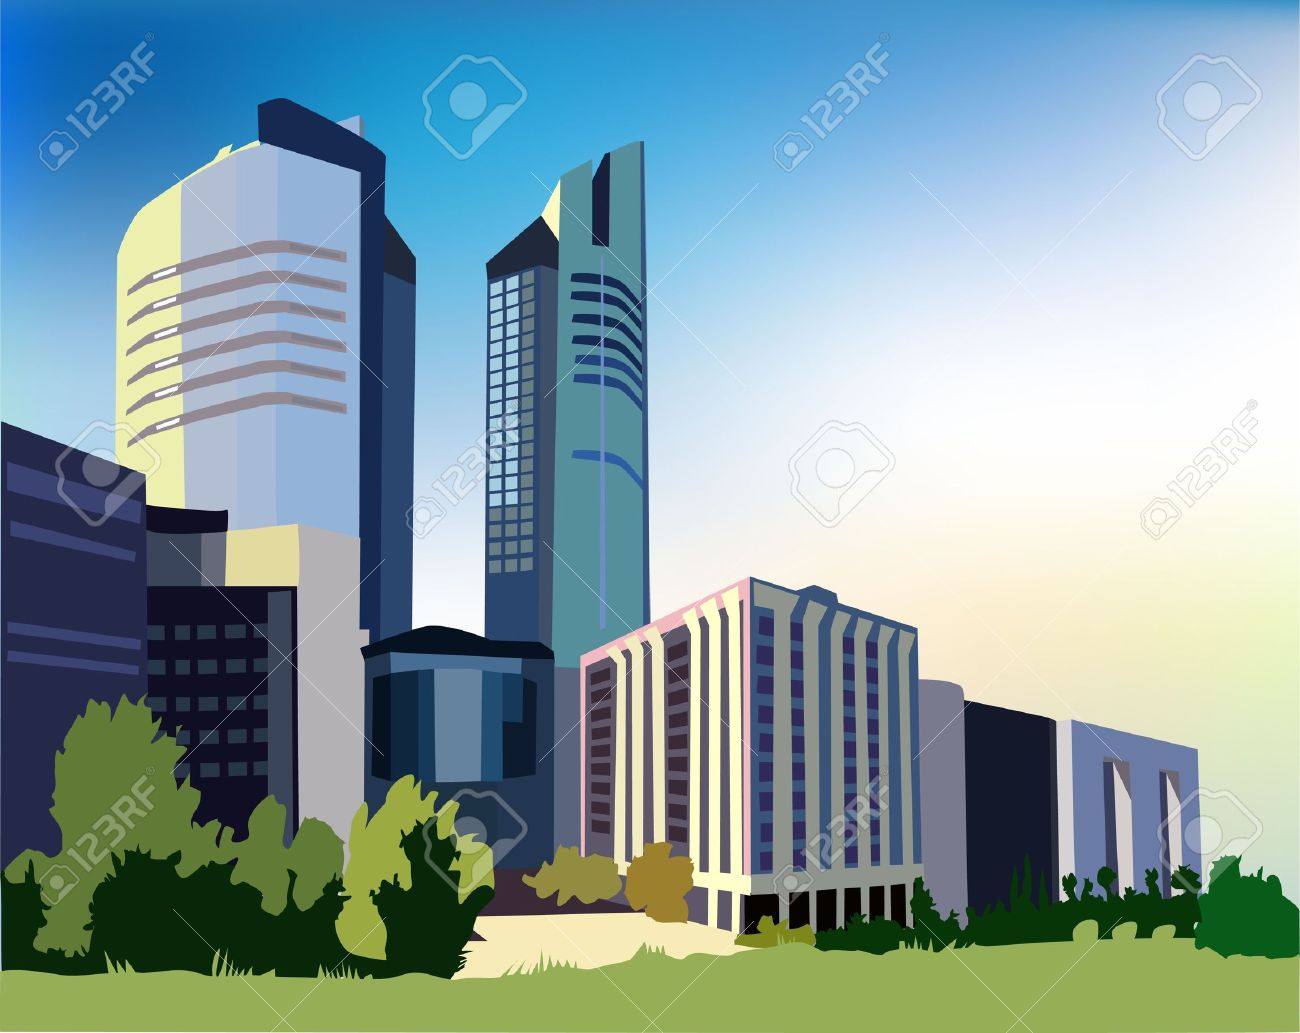 Building background clipart 7 » Clipart Station.